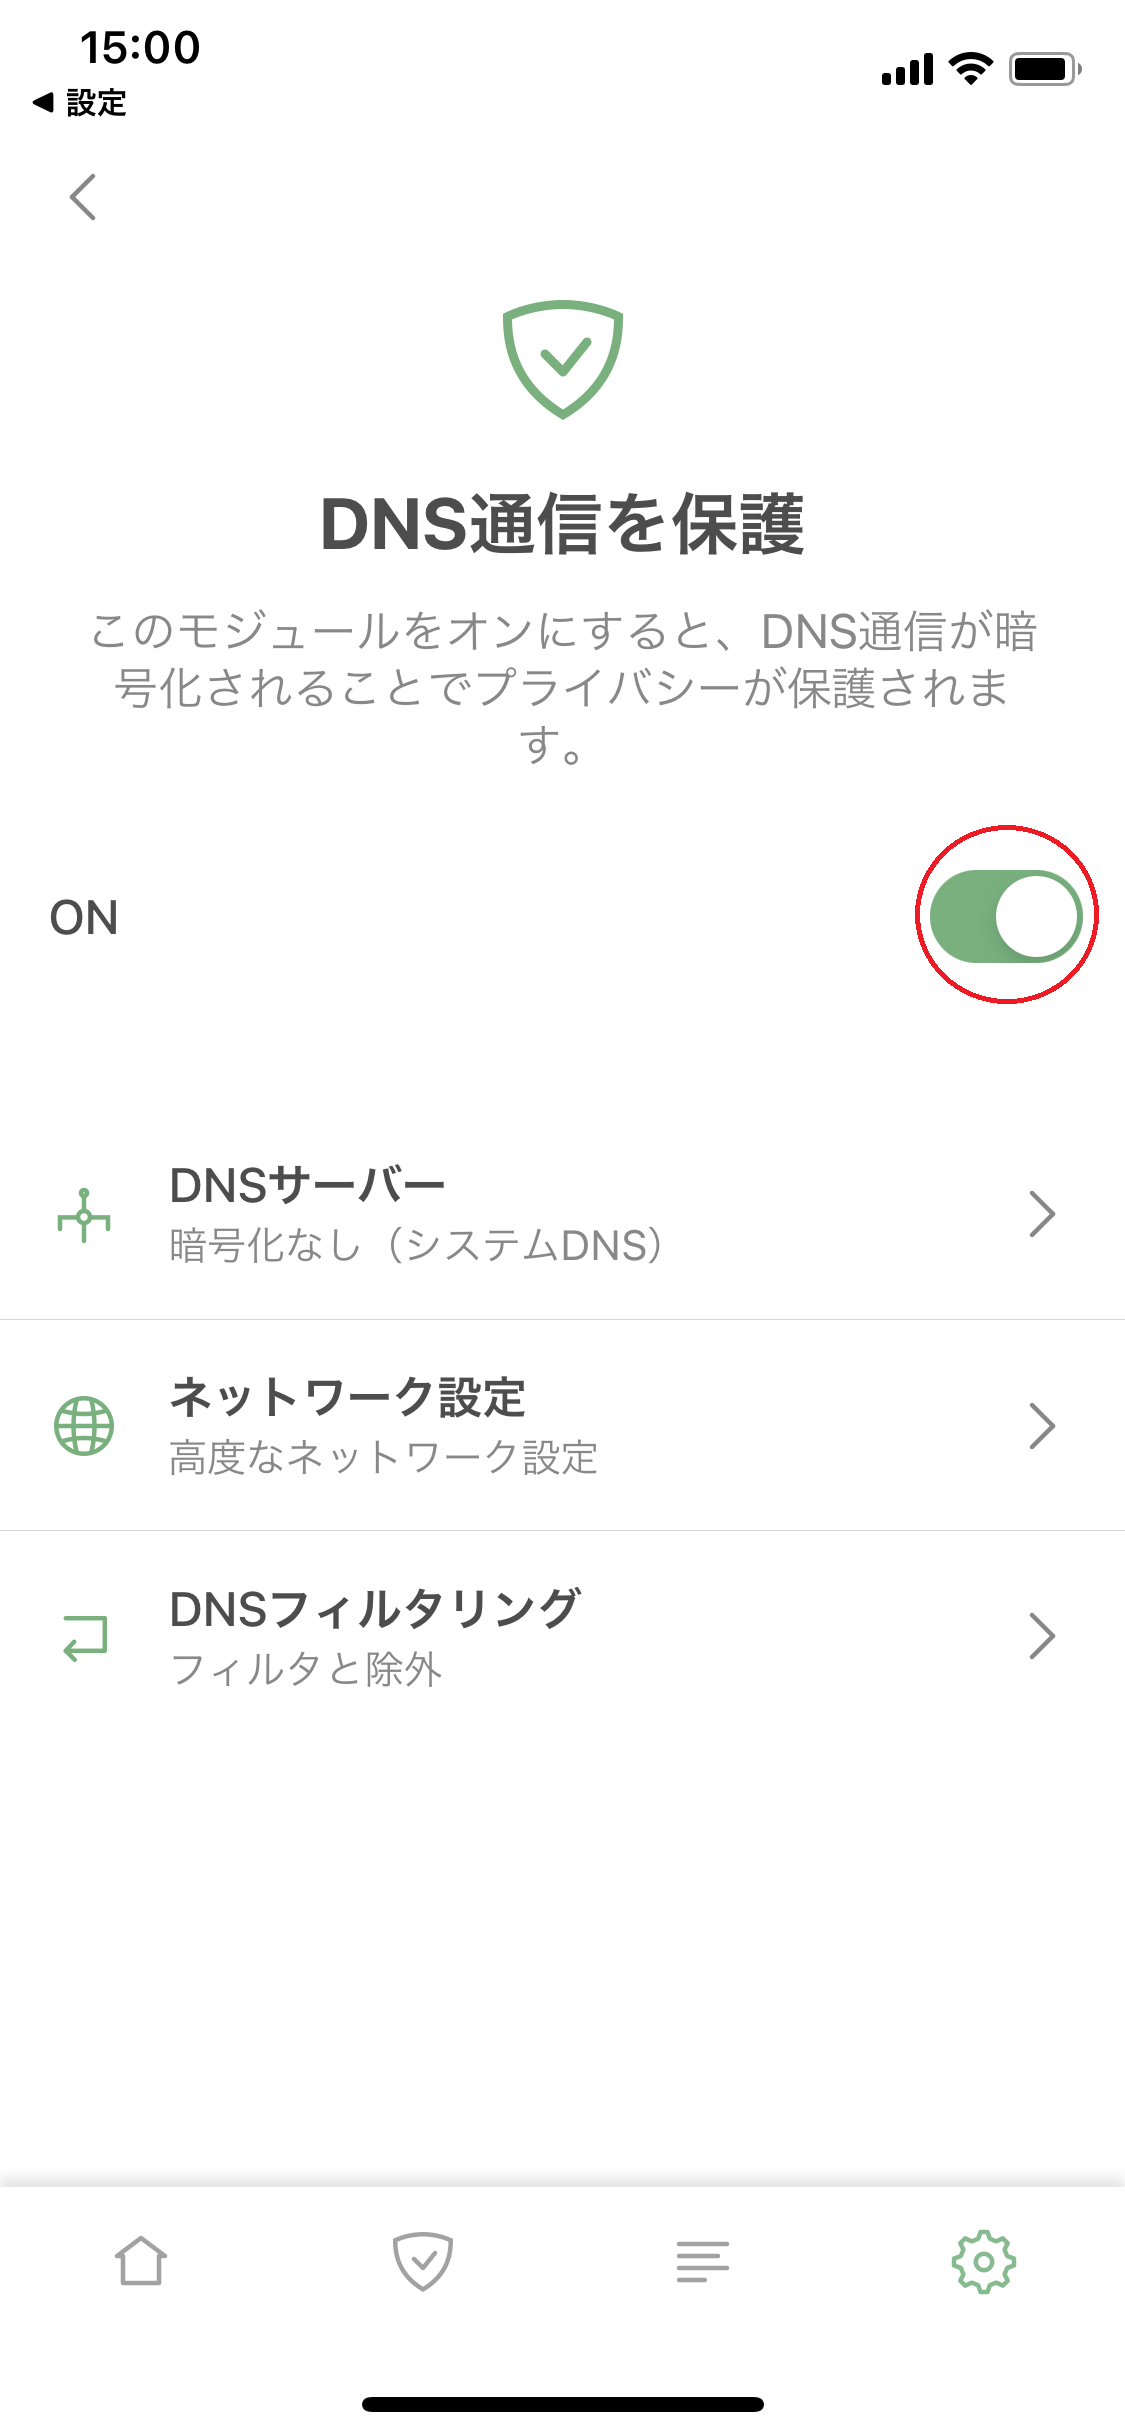 adguard_pro_03_DNS通信を保護_01.png